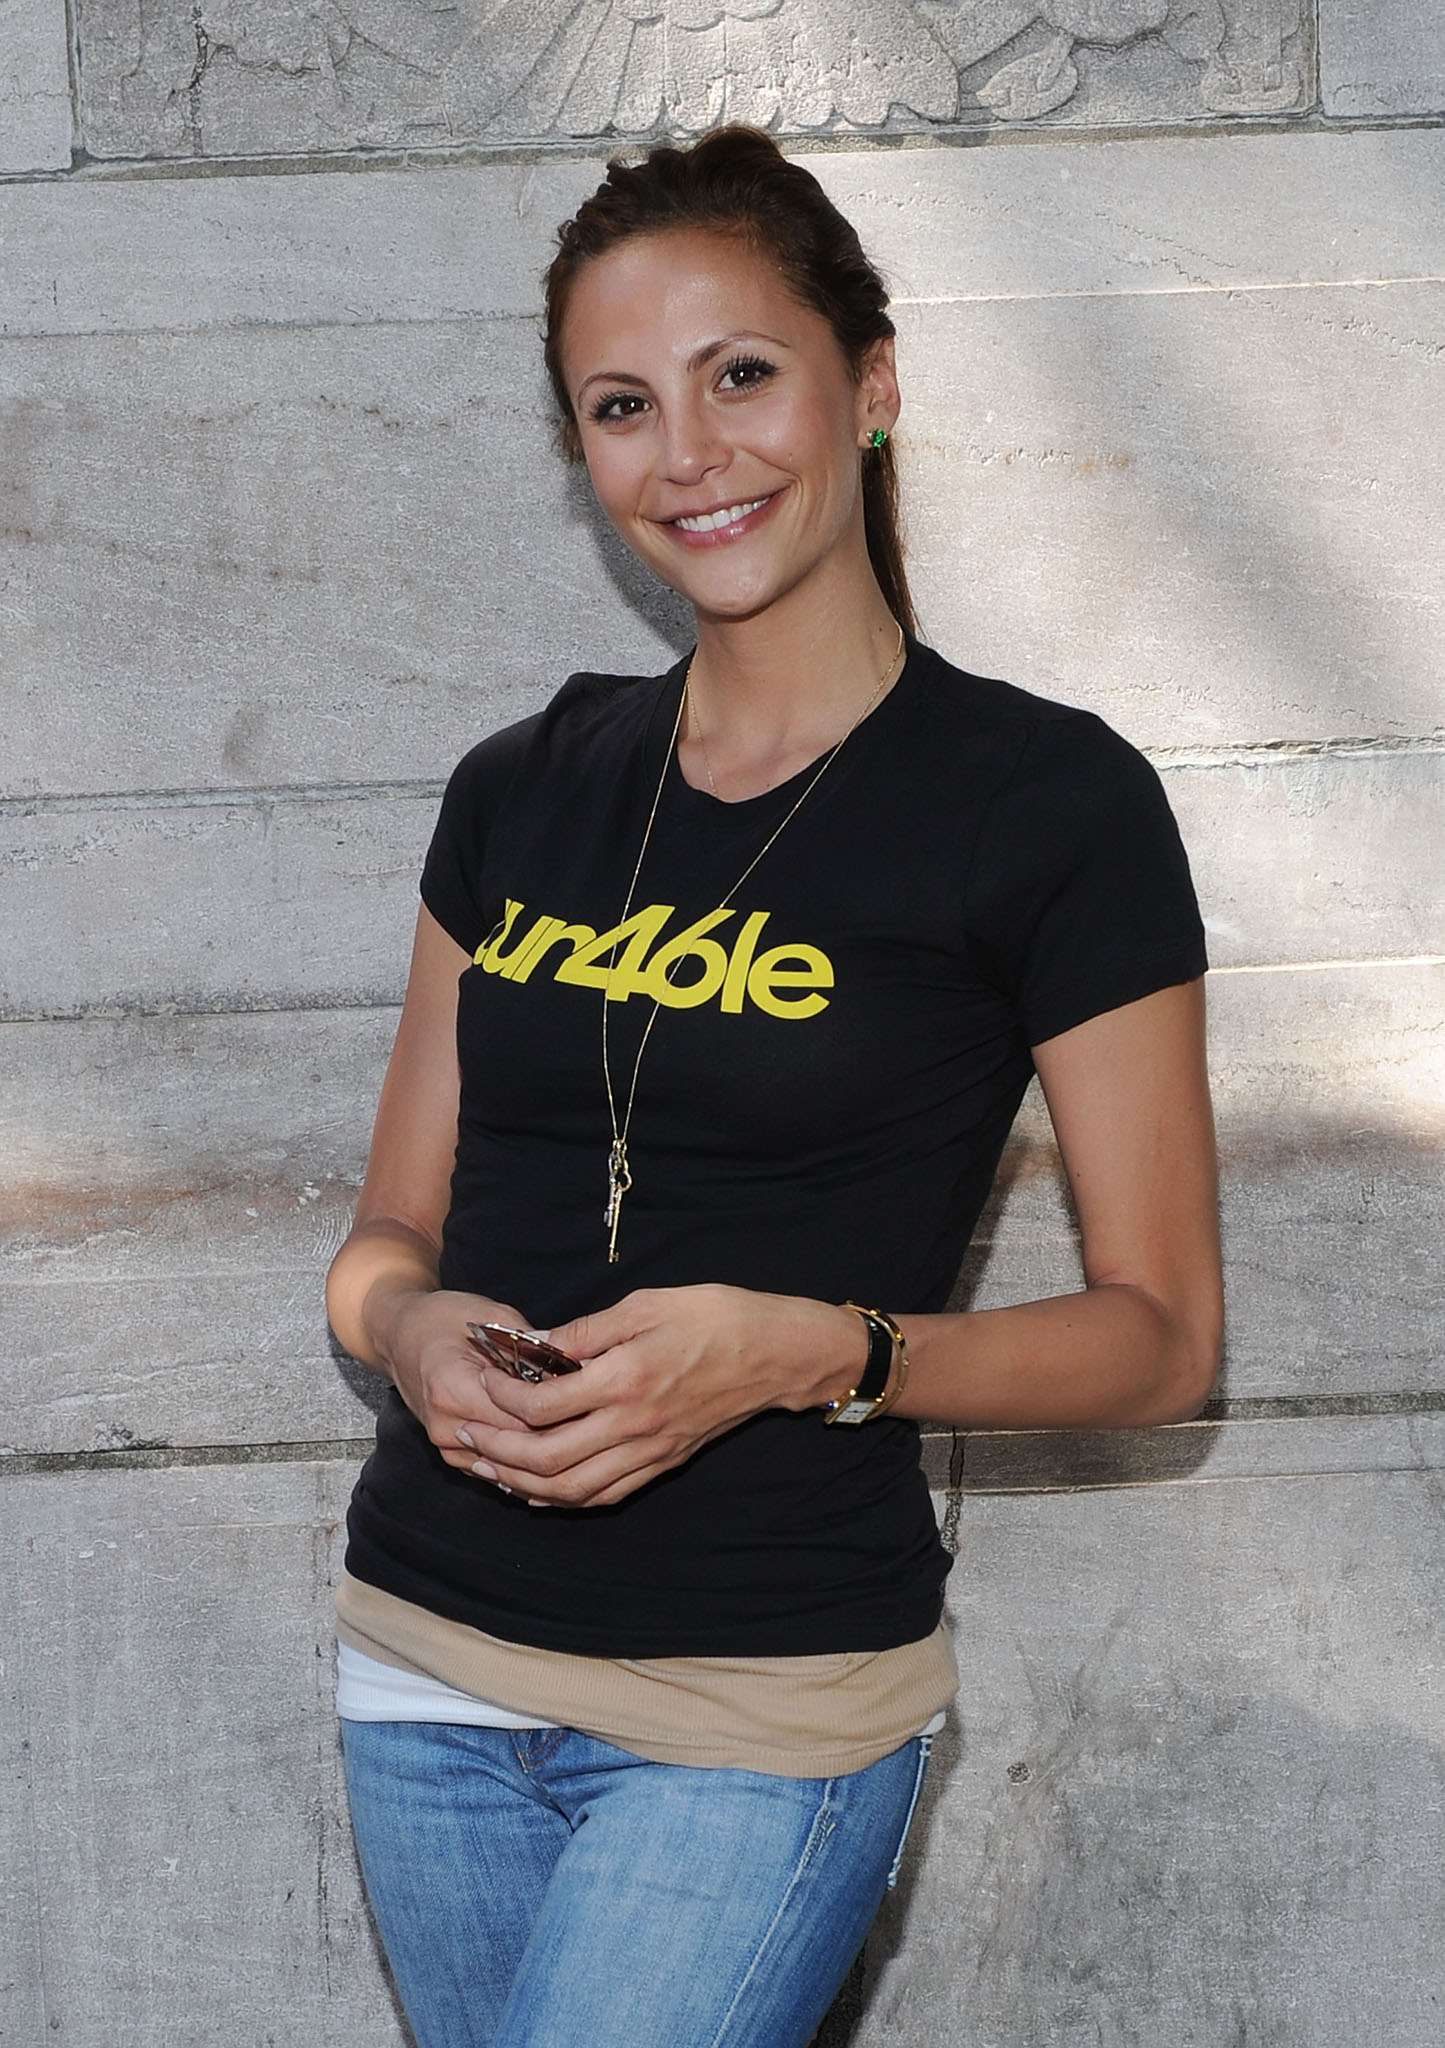 Gia Allemand in 2010. (Slaven Vlasic/Getty Images)